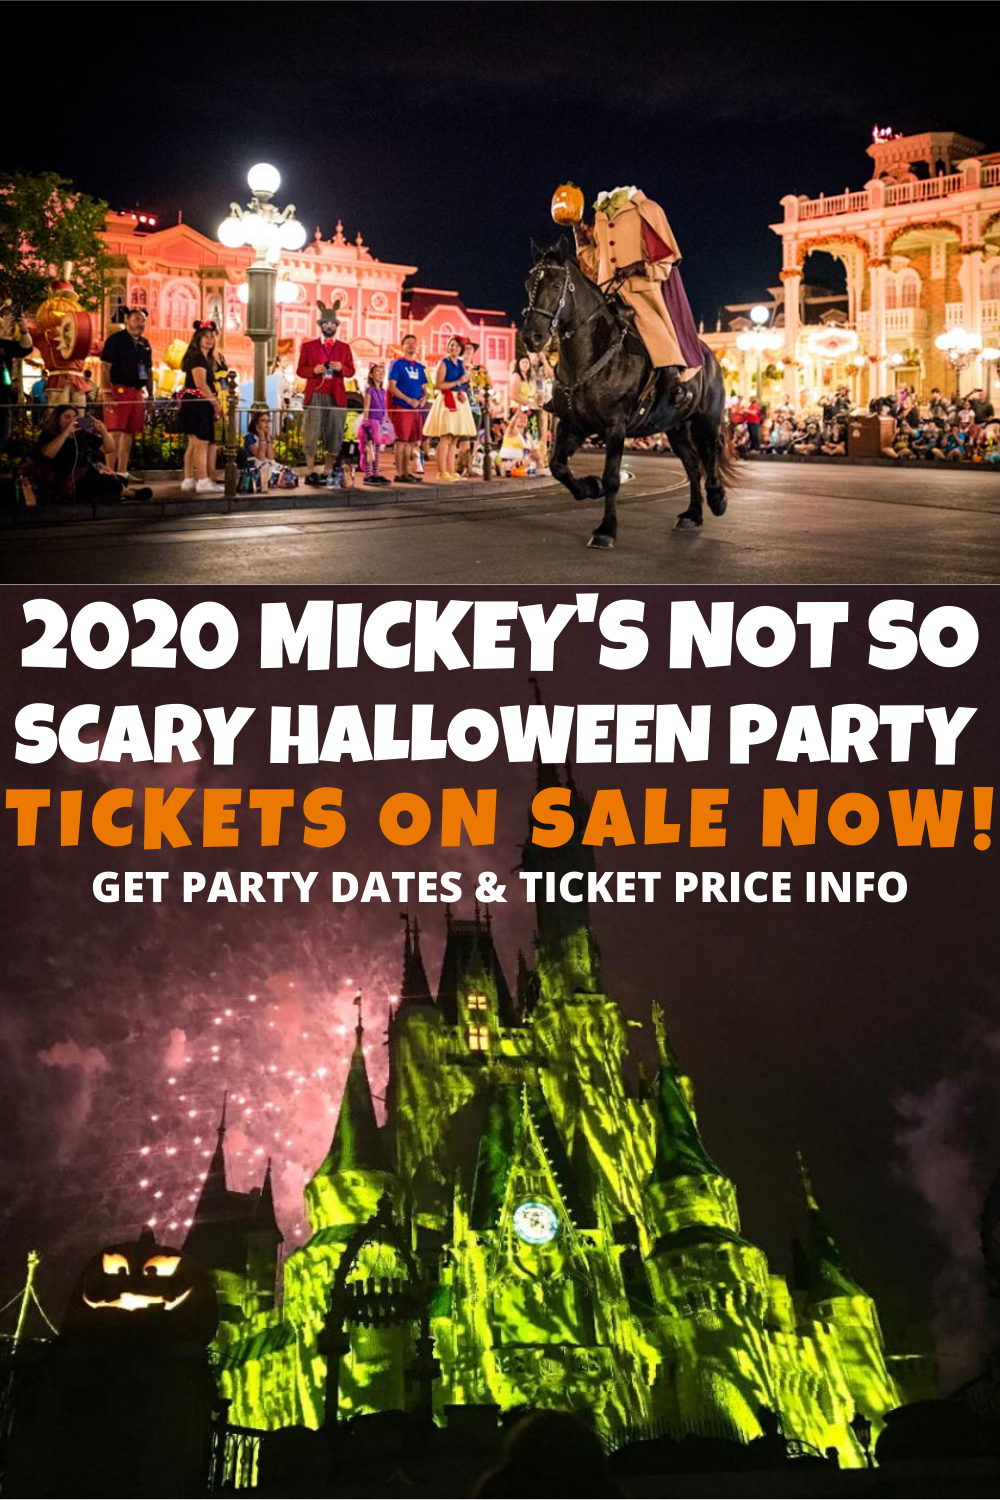 Mickey's Not So Scary Halloween Party 2020 Dates,Tickets